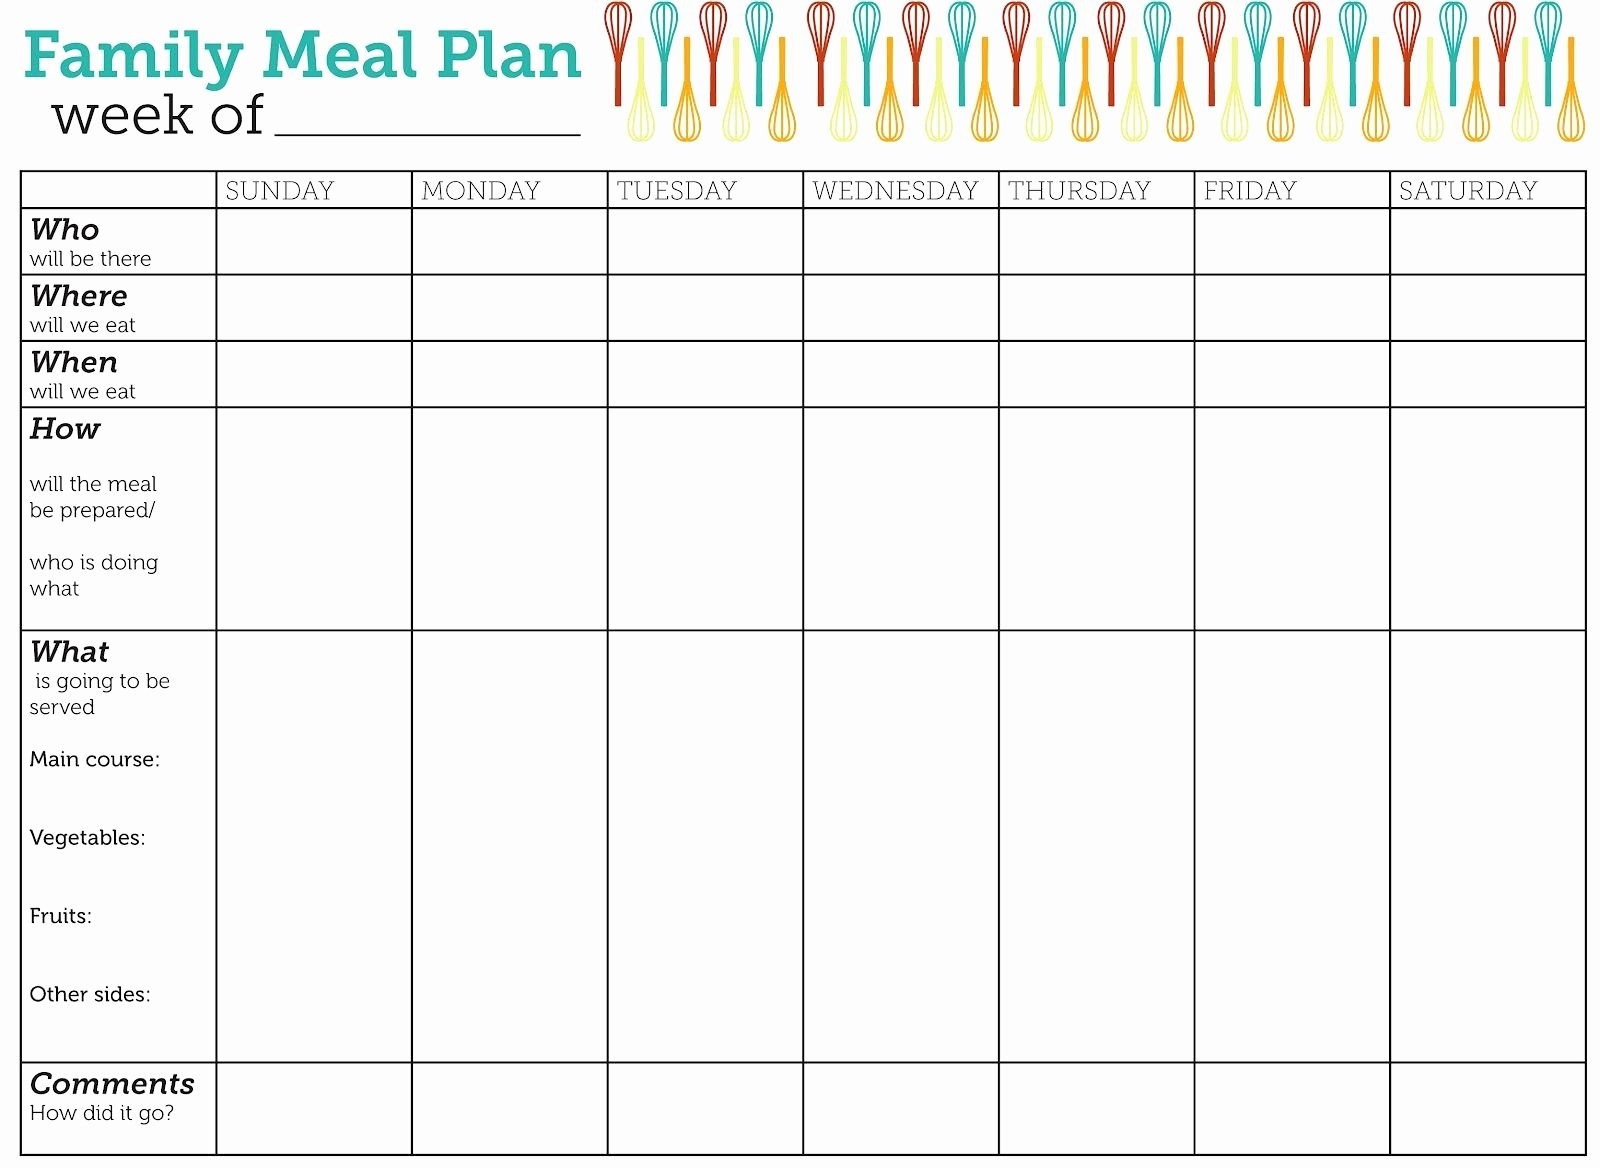 Meal Plan Excel Template Unique Meal Plan Calendar Template Excel Ten Things to Know About